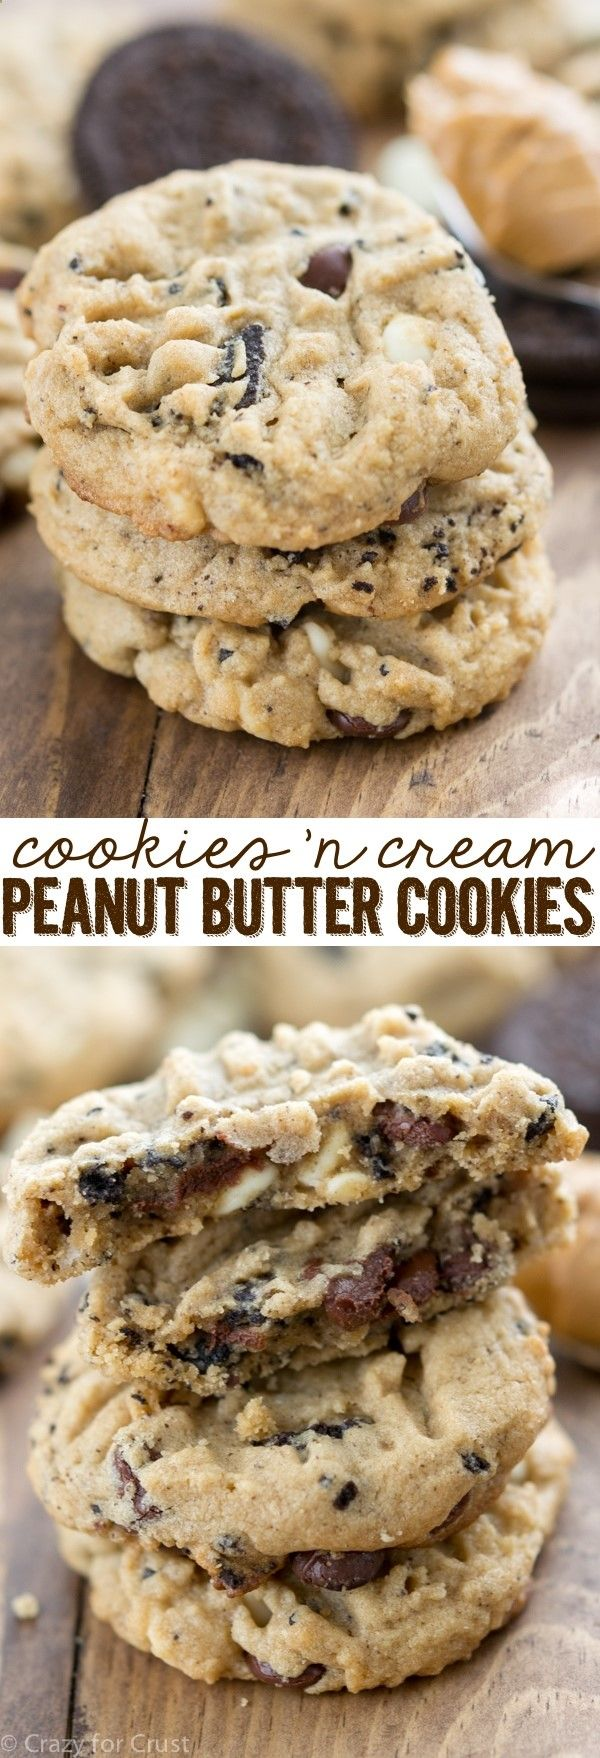 Cookies n Cream Peanut Butter Cookies are my favorite peanut butter cookie recipe filled with chocolate chips, white chocolate, and crushed Oreo pieces!